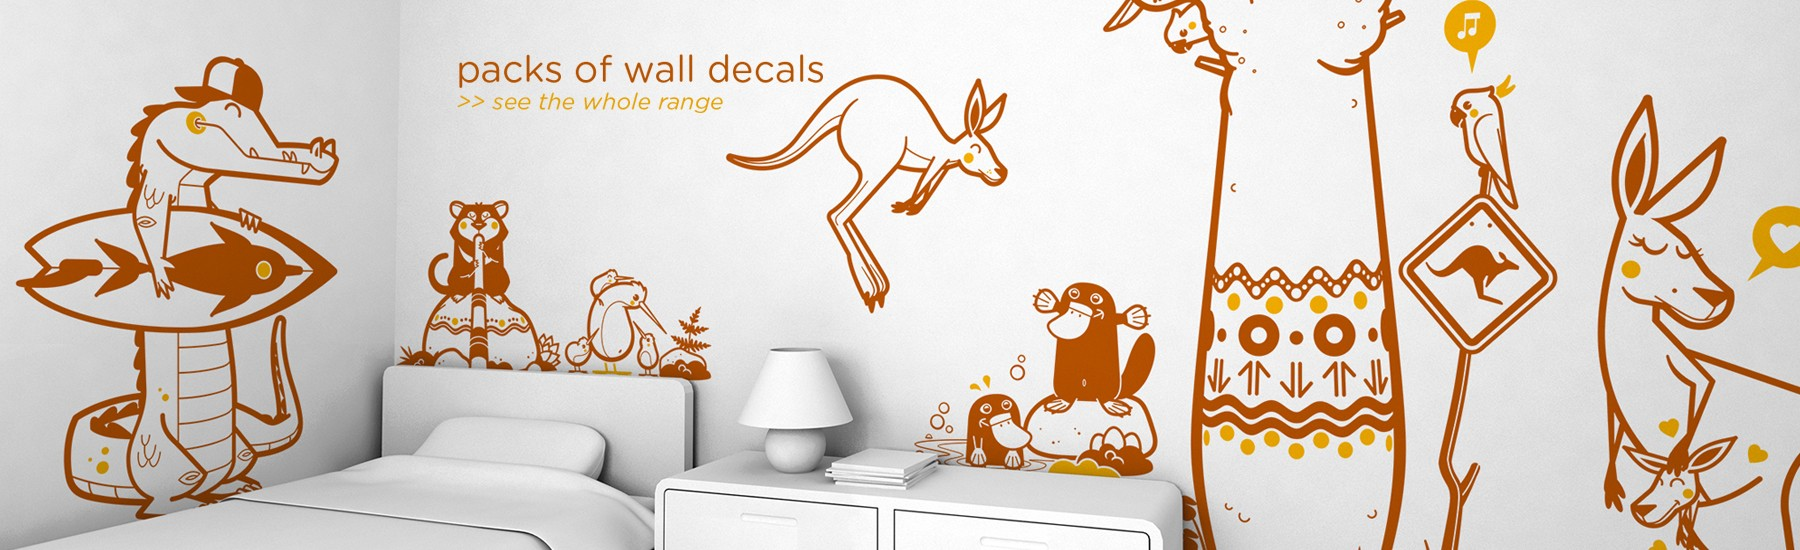 Kids wall decals wallpapers and decor accessories by the brand e glue packs of kids wall decals amipublicfo Gallery